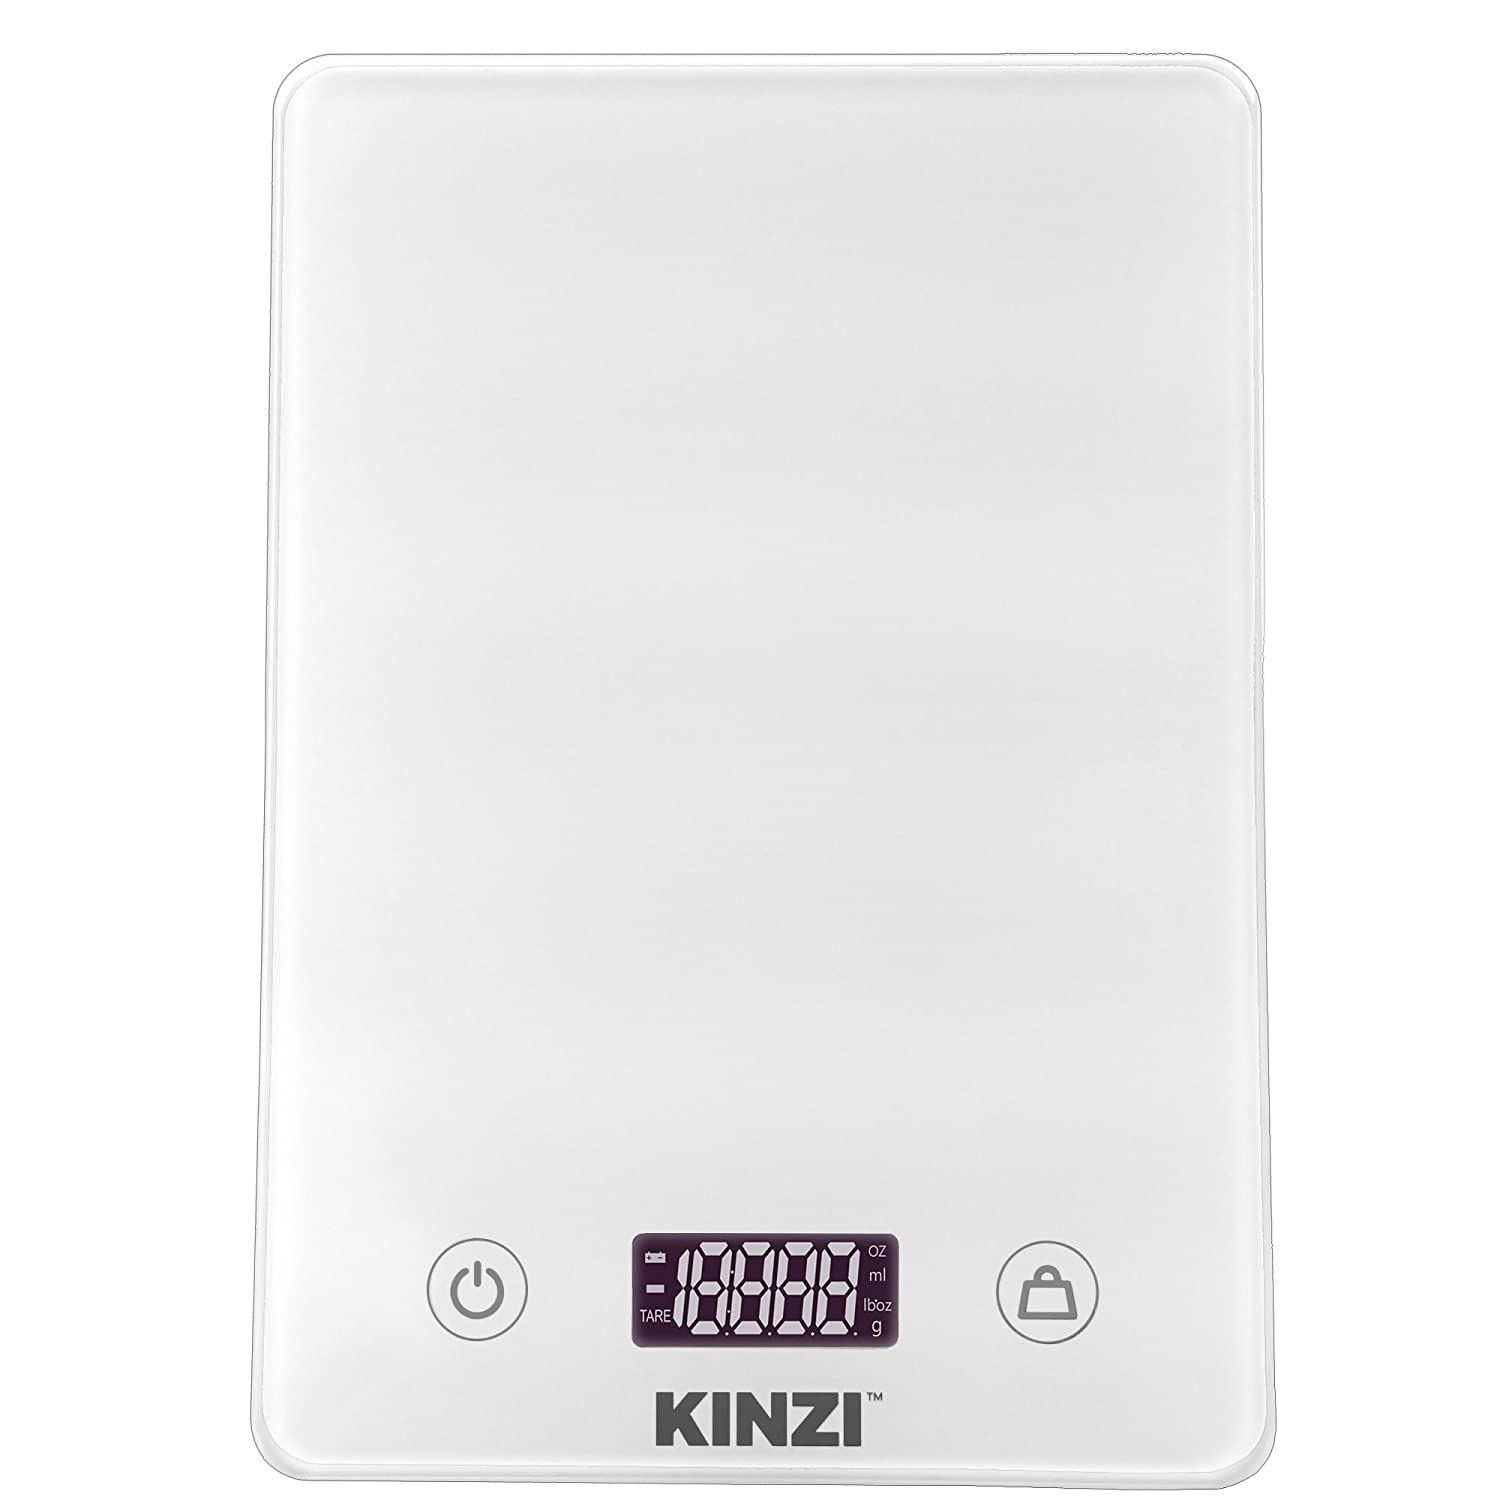 Kinzi Digital Touch Kitchen Scale (12 lbs Edition), Tempered Glass in Clean White COMINHKPR115347